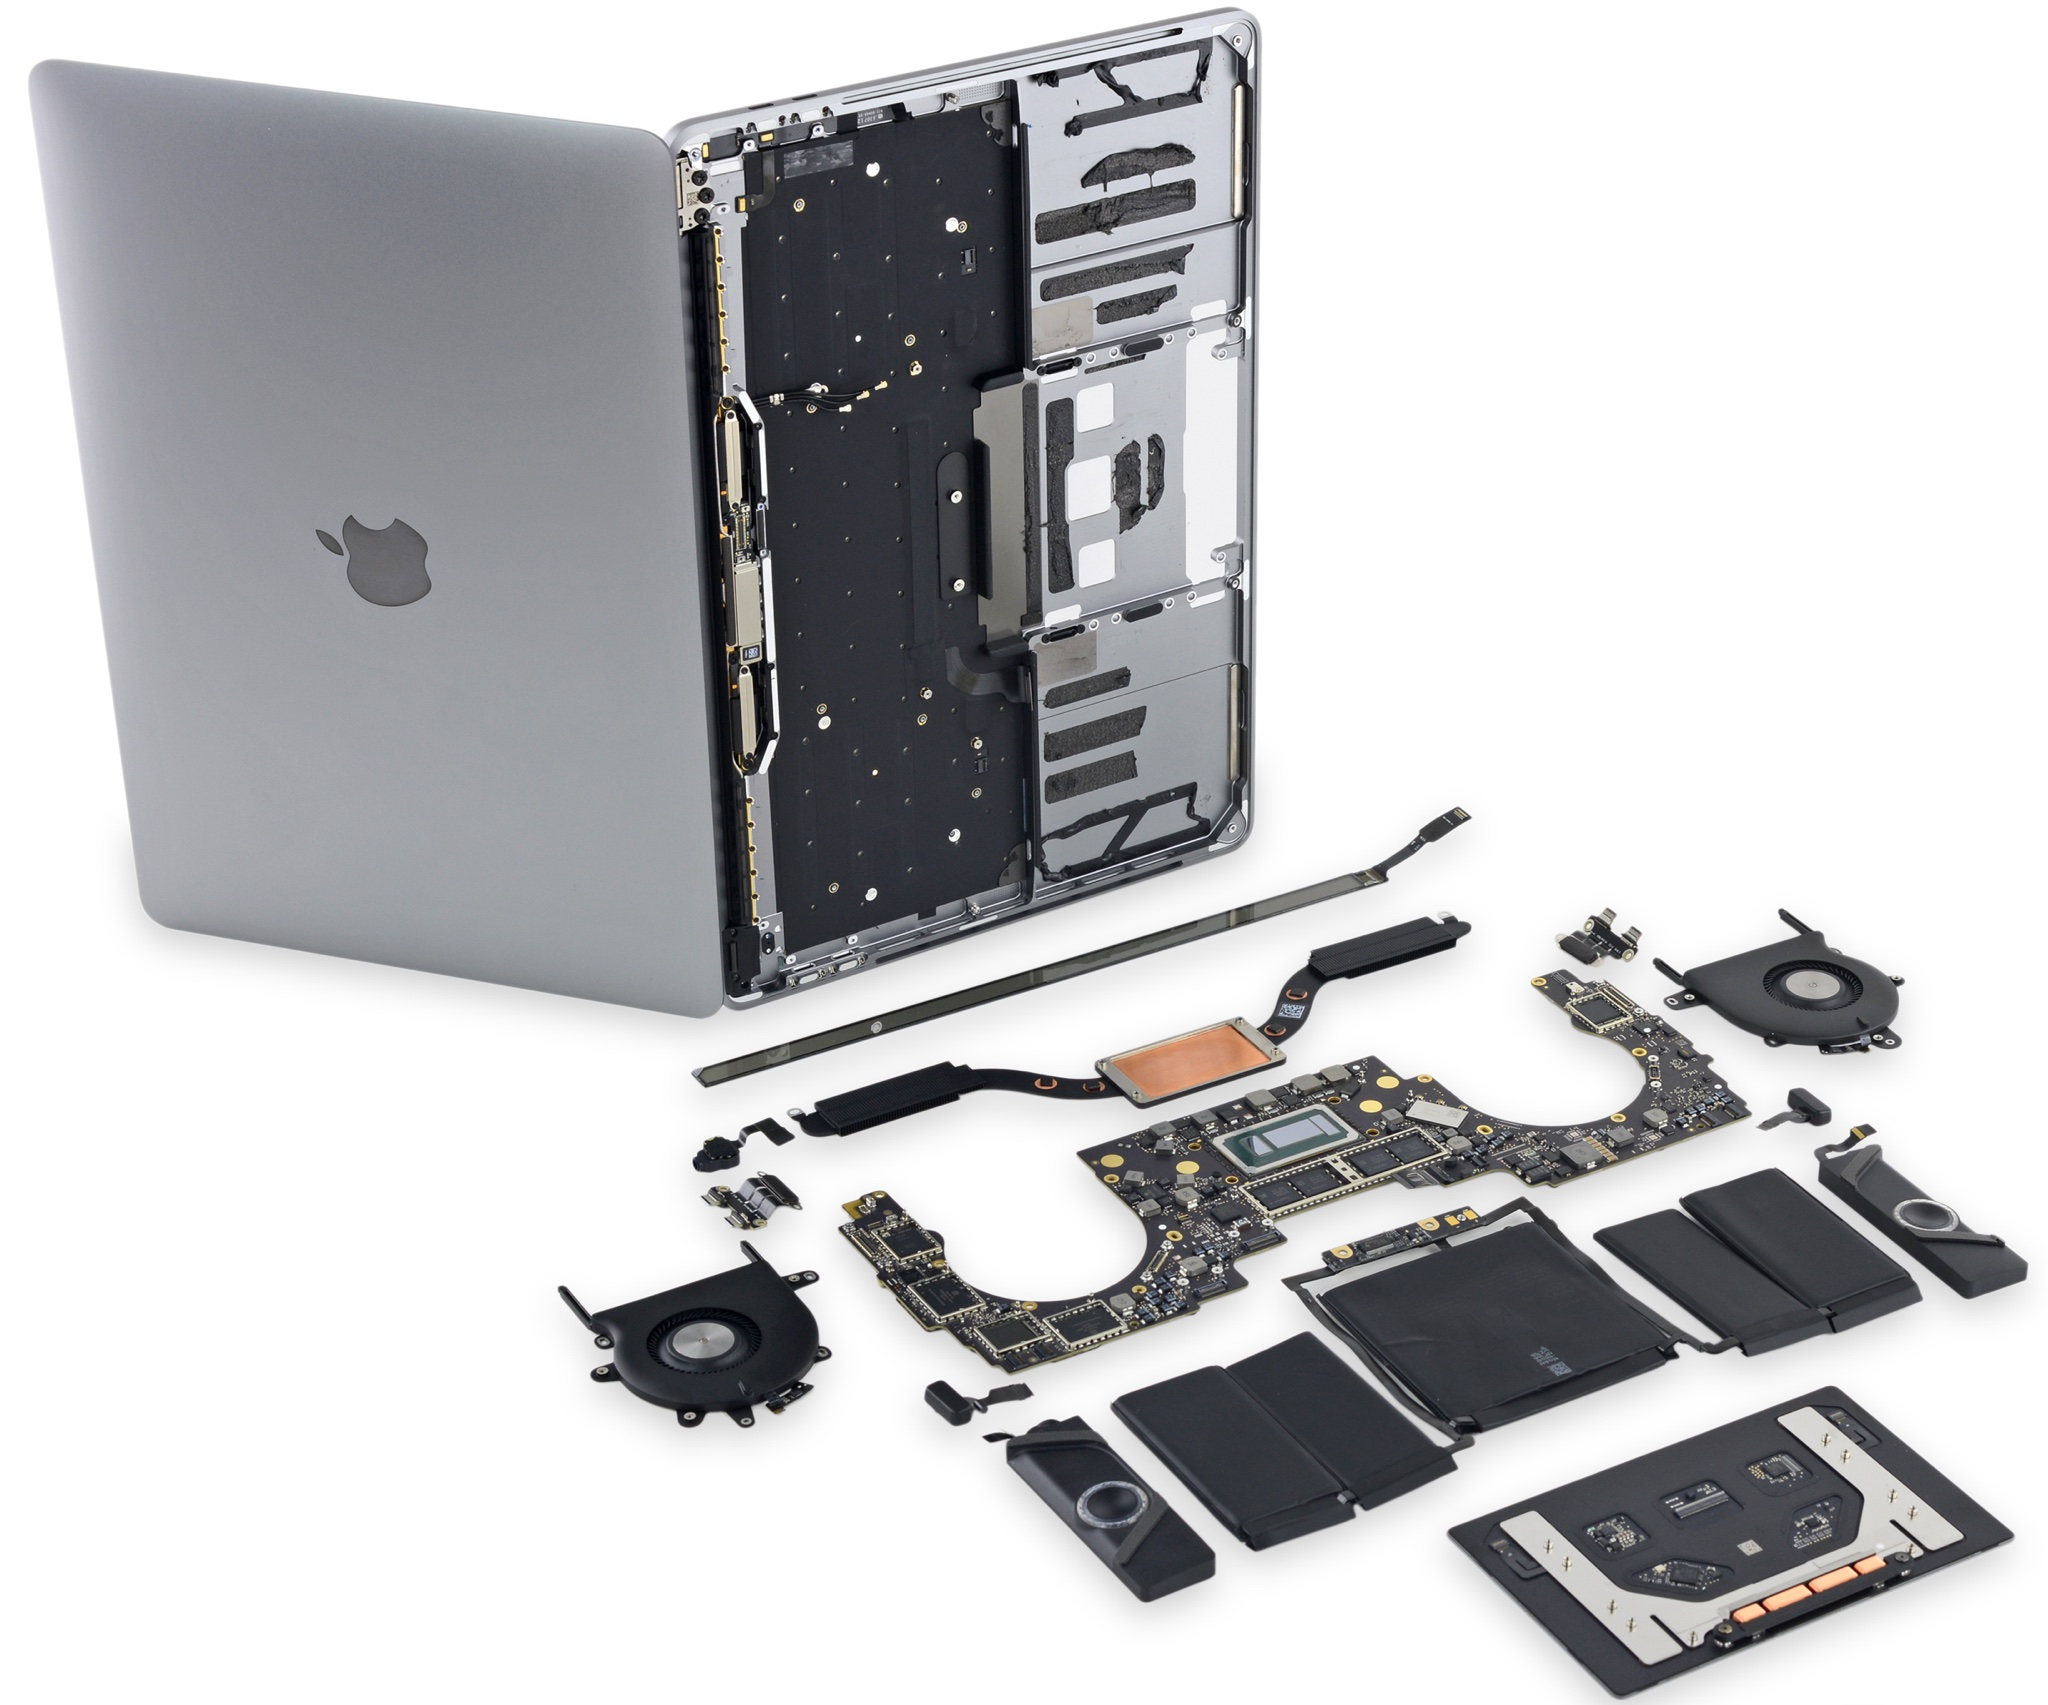 13 inch MacBook Pro with Touch Bar iFixit teardown 004